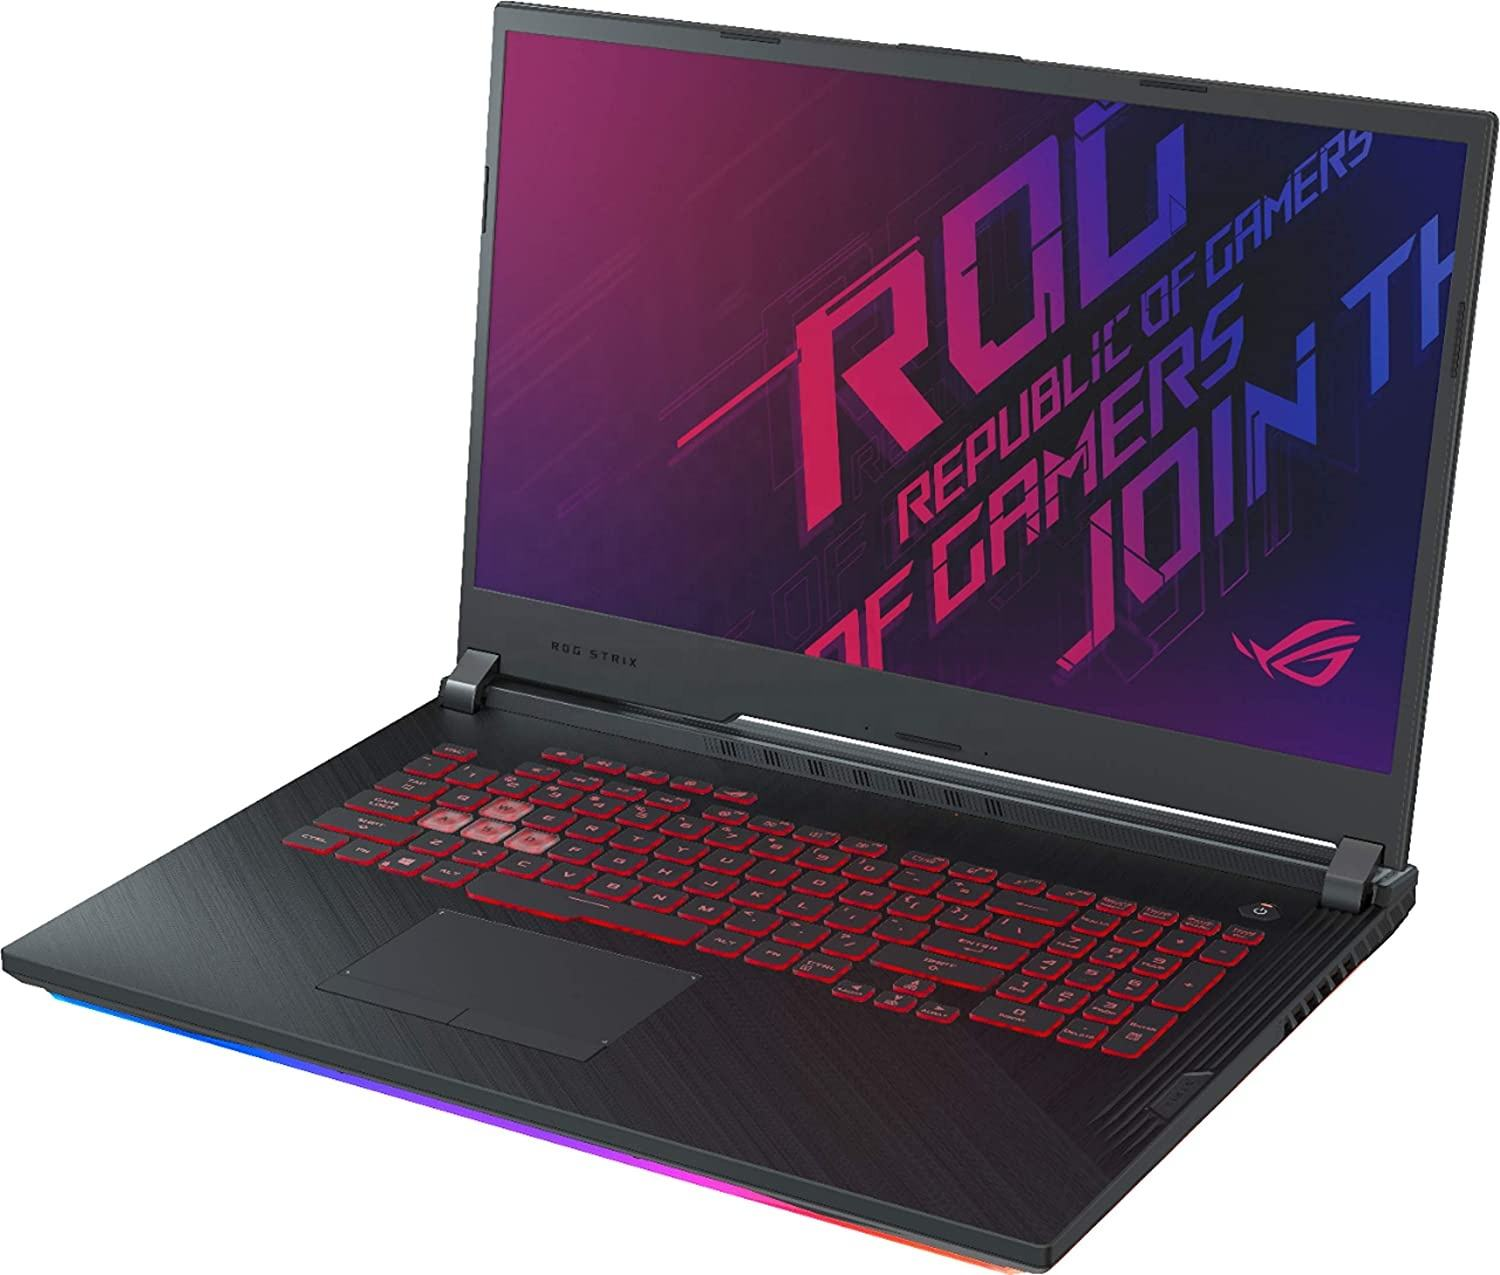 "Original and Brand New Sealed for ASU S ROG Mothership GZ700GX 17.3"" 4K 2-in-1 Gaming Laptop i9 64GB 1.5TB RTX2080"